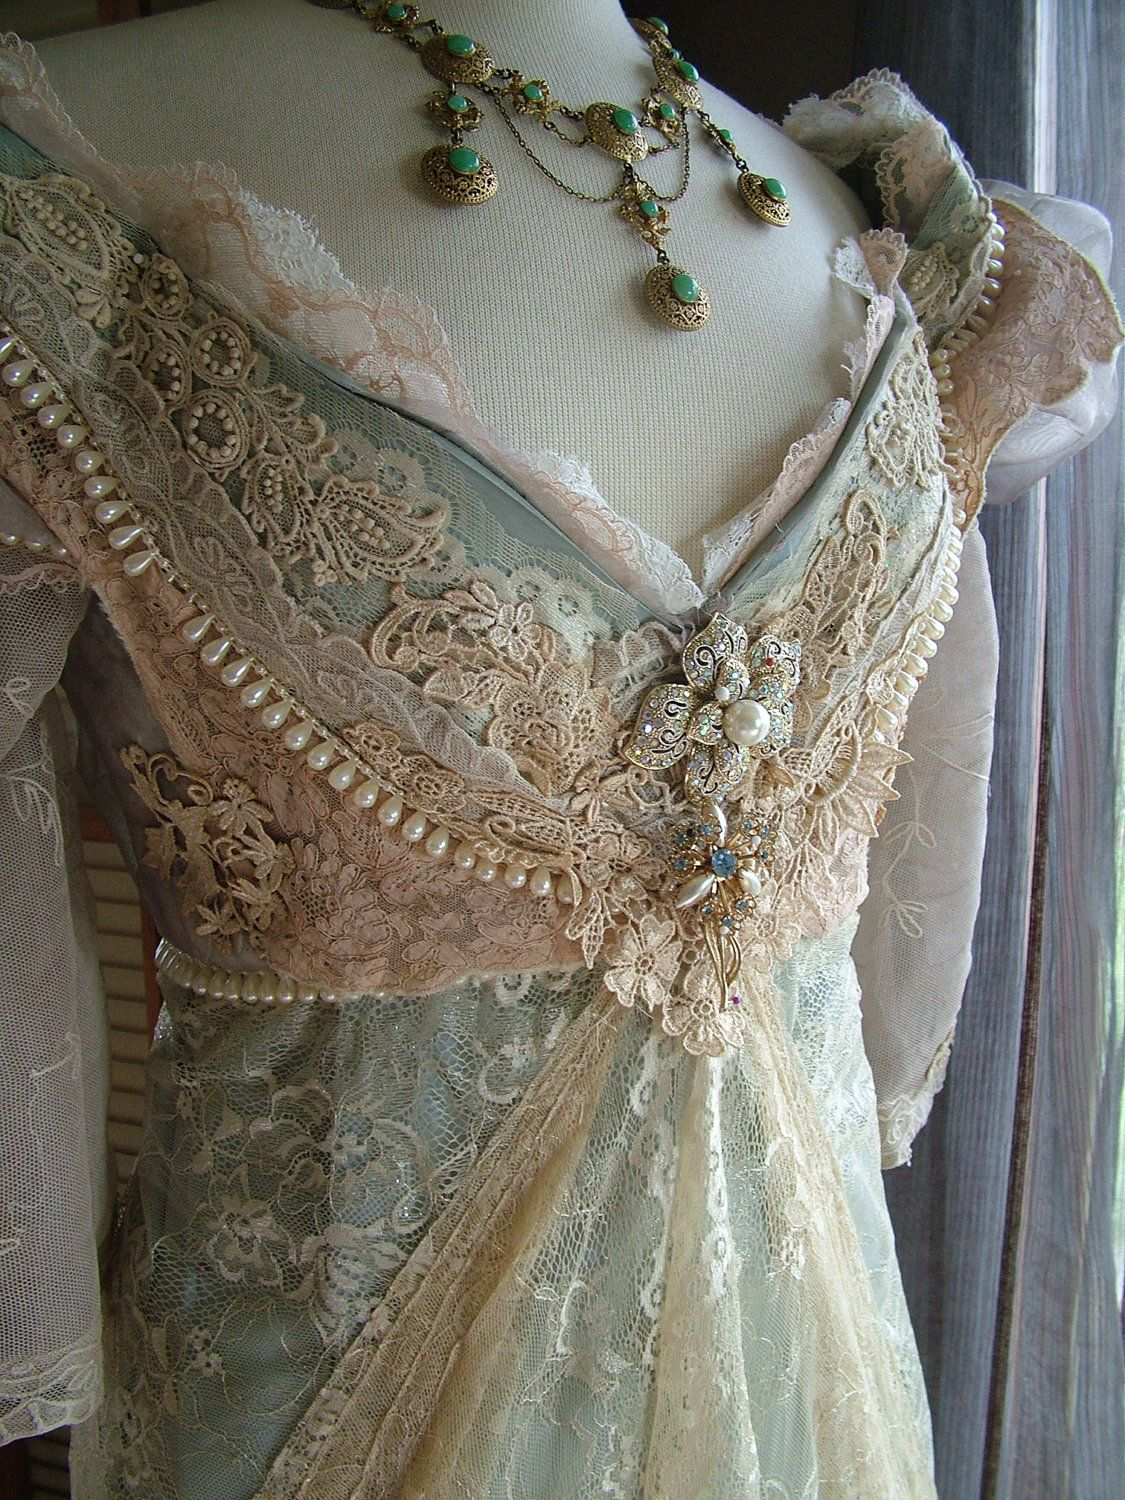 Appliques Originales Original Handmade Gown Using Vintage Antique And New Laces